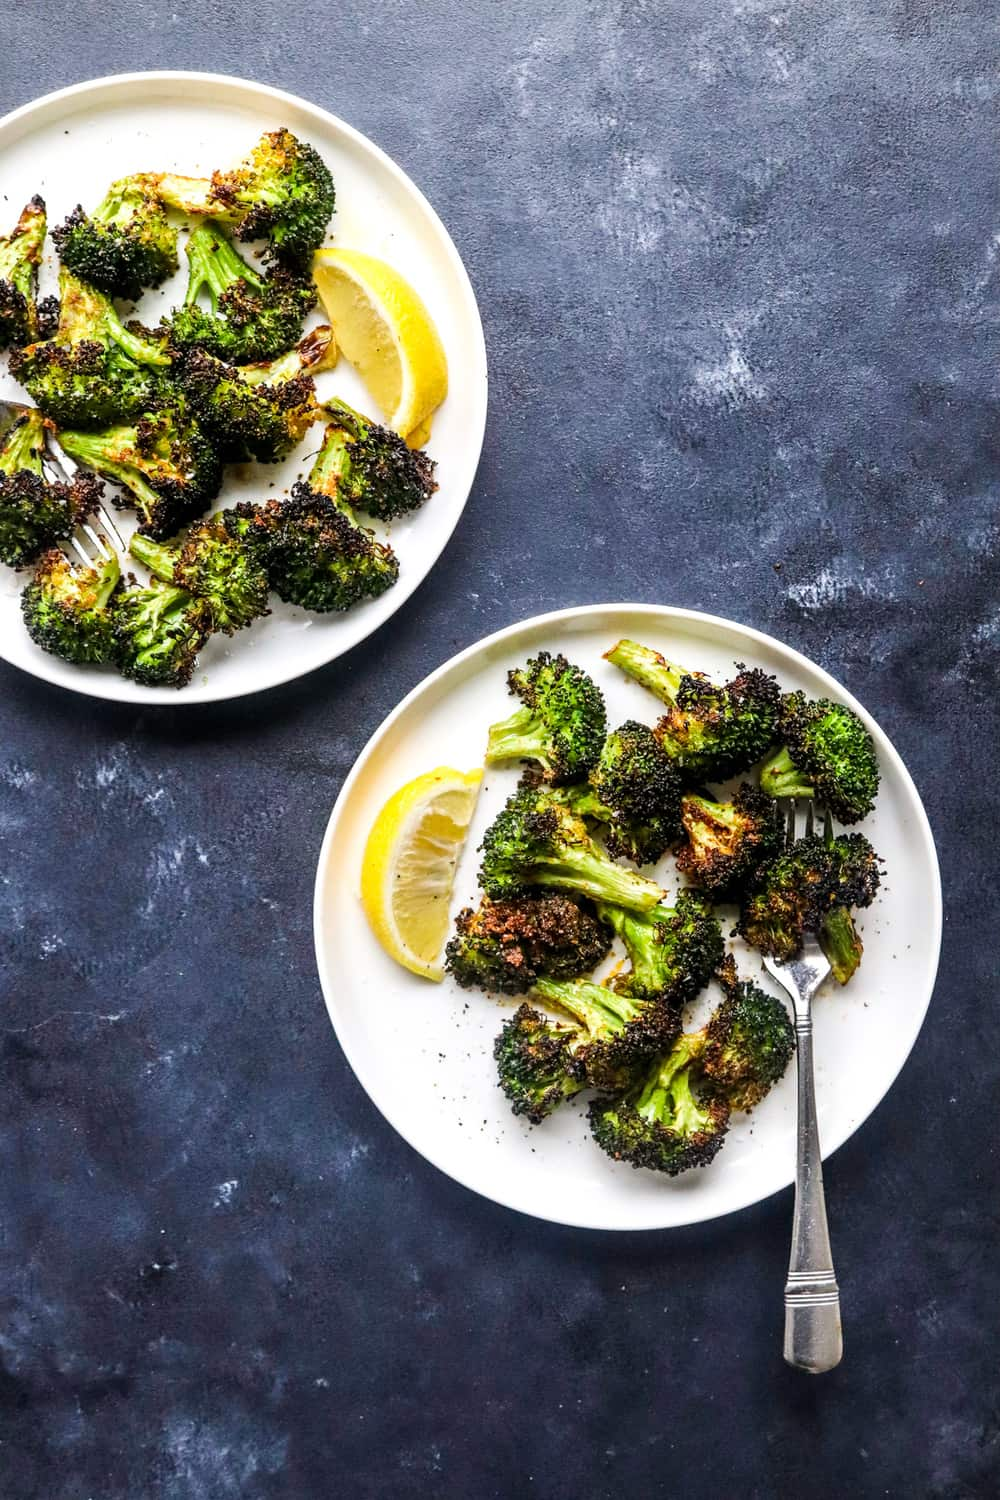 two round white plates with roasted broccoli on them with a lemon wedge next to it